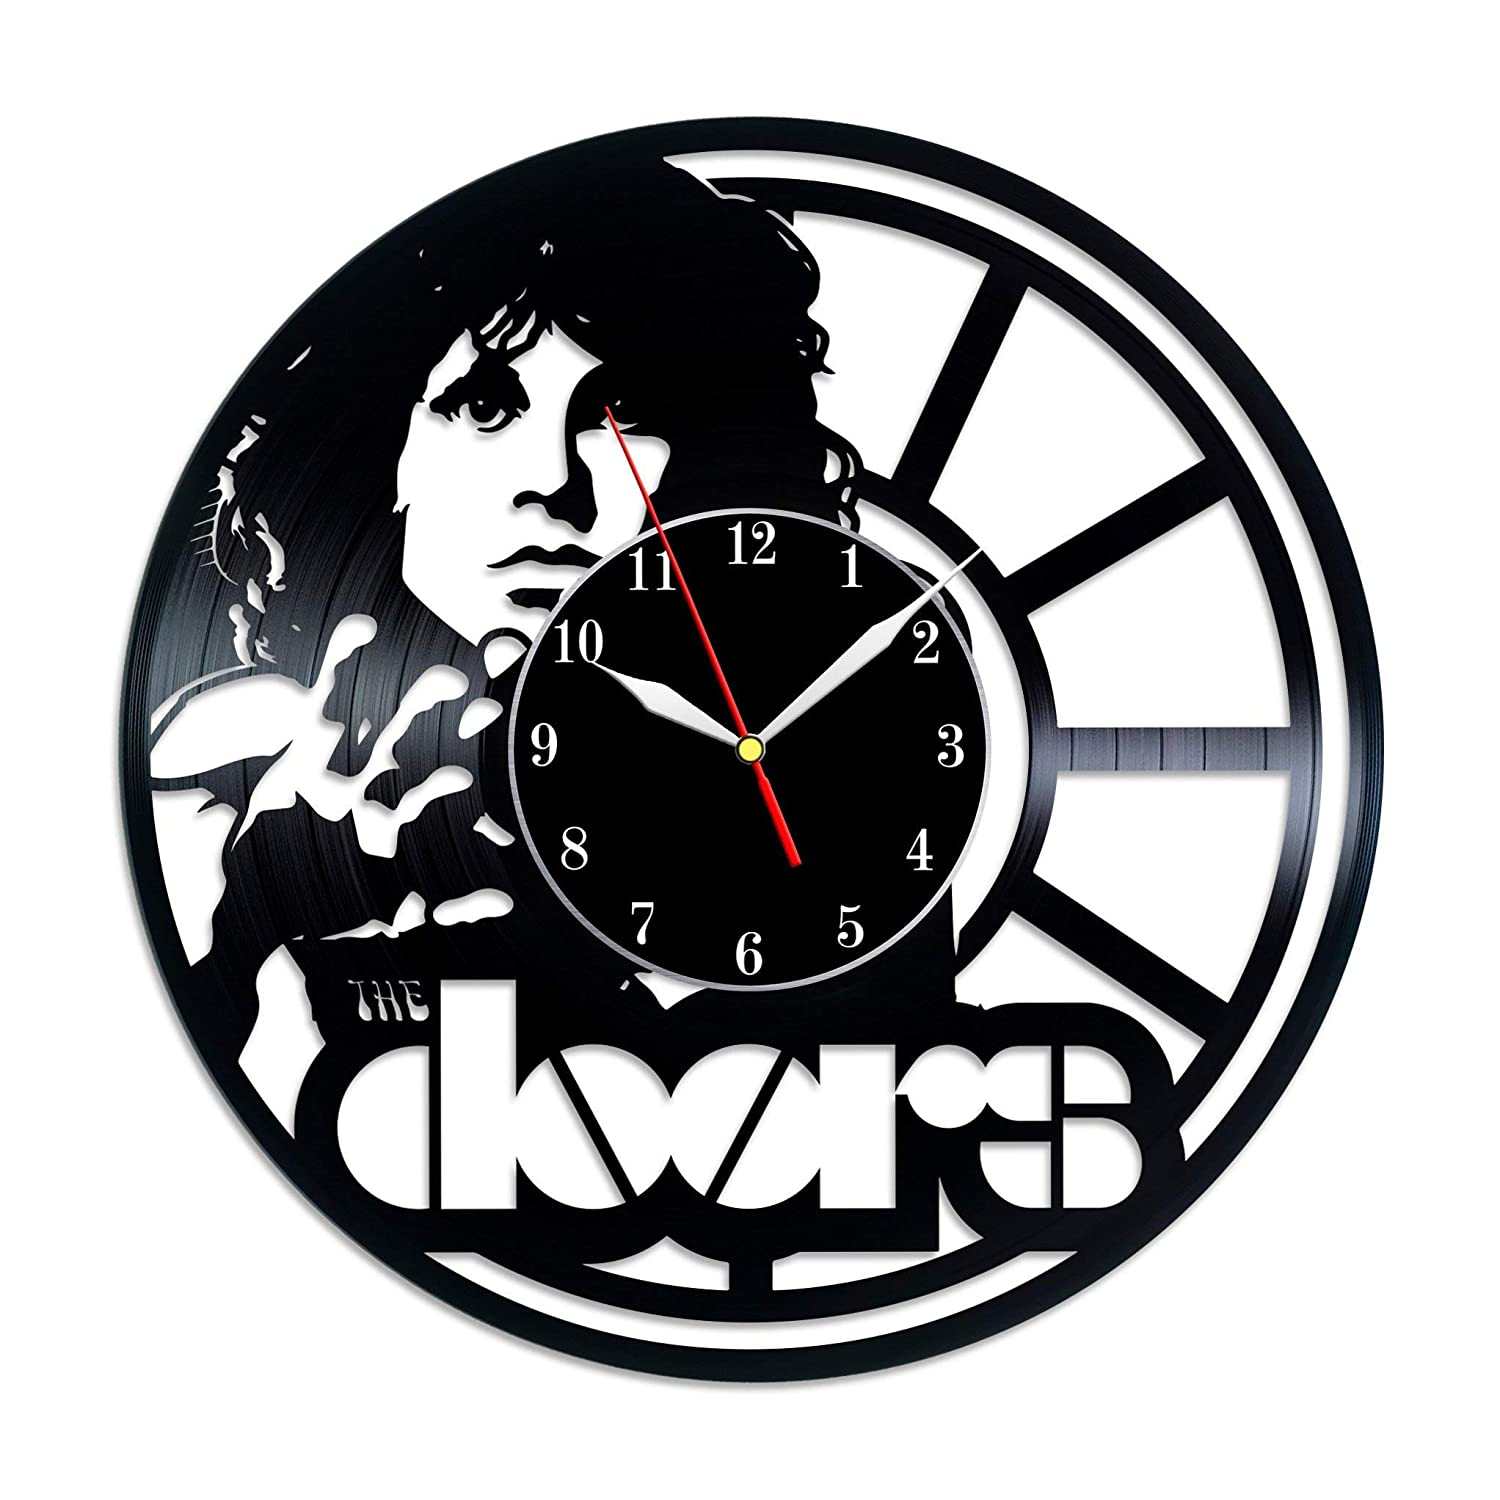 The Doors Gifts For Every Occasion Wall Clock Vintage Birthday Gift For Fan The Doors kitchen decor The Doors band vinyl record wall clock